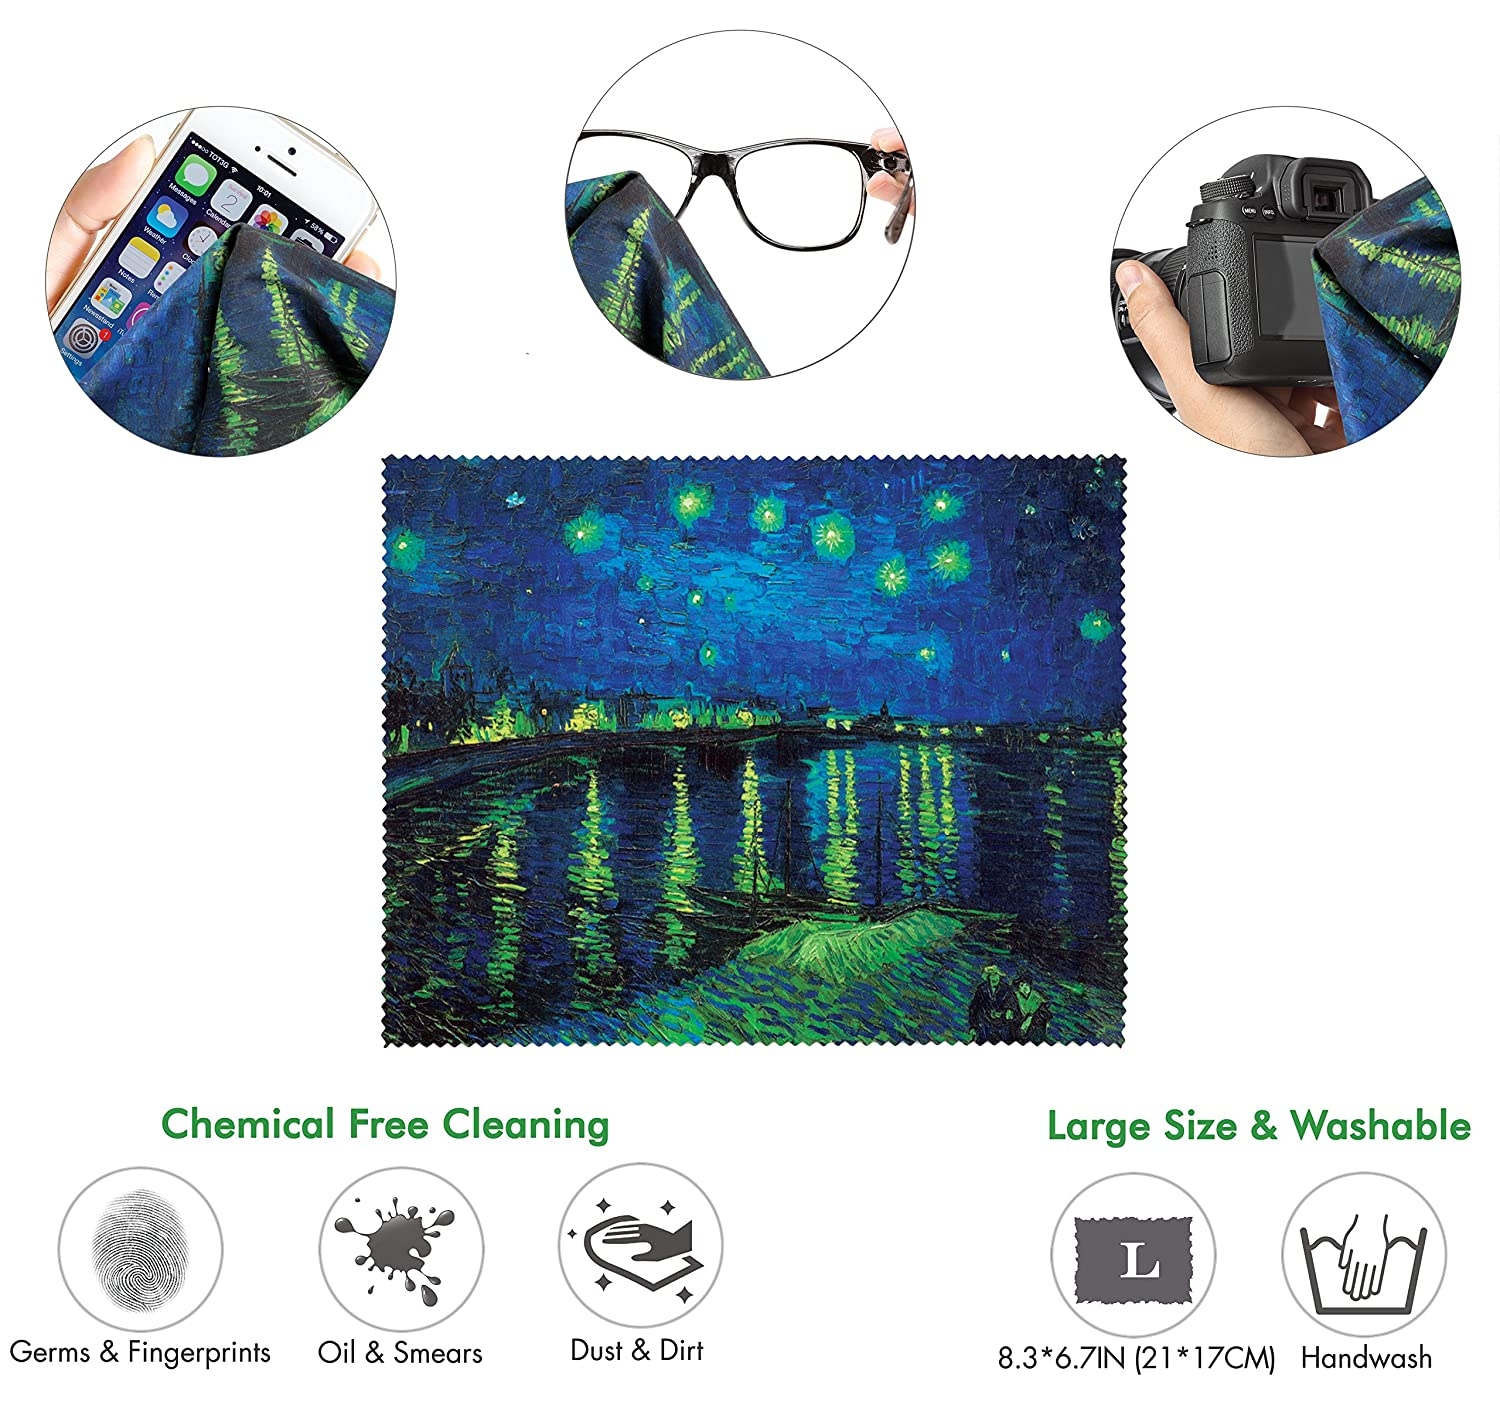 Van Gogh Starry Night Ergonomic Design Mouse Pad with Wrist Support Cars /& Electronics Matching Microfiber Cleaning Cloth for Glasses Mouse Pad for Laptop PC Computer and Mac. Gel Hand Rest